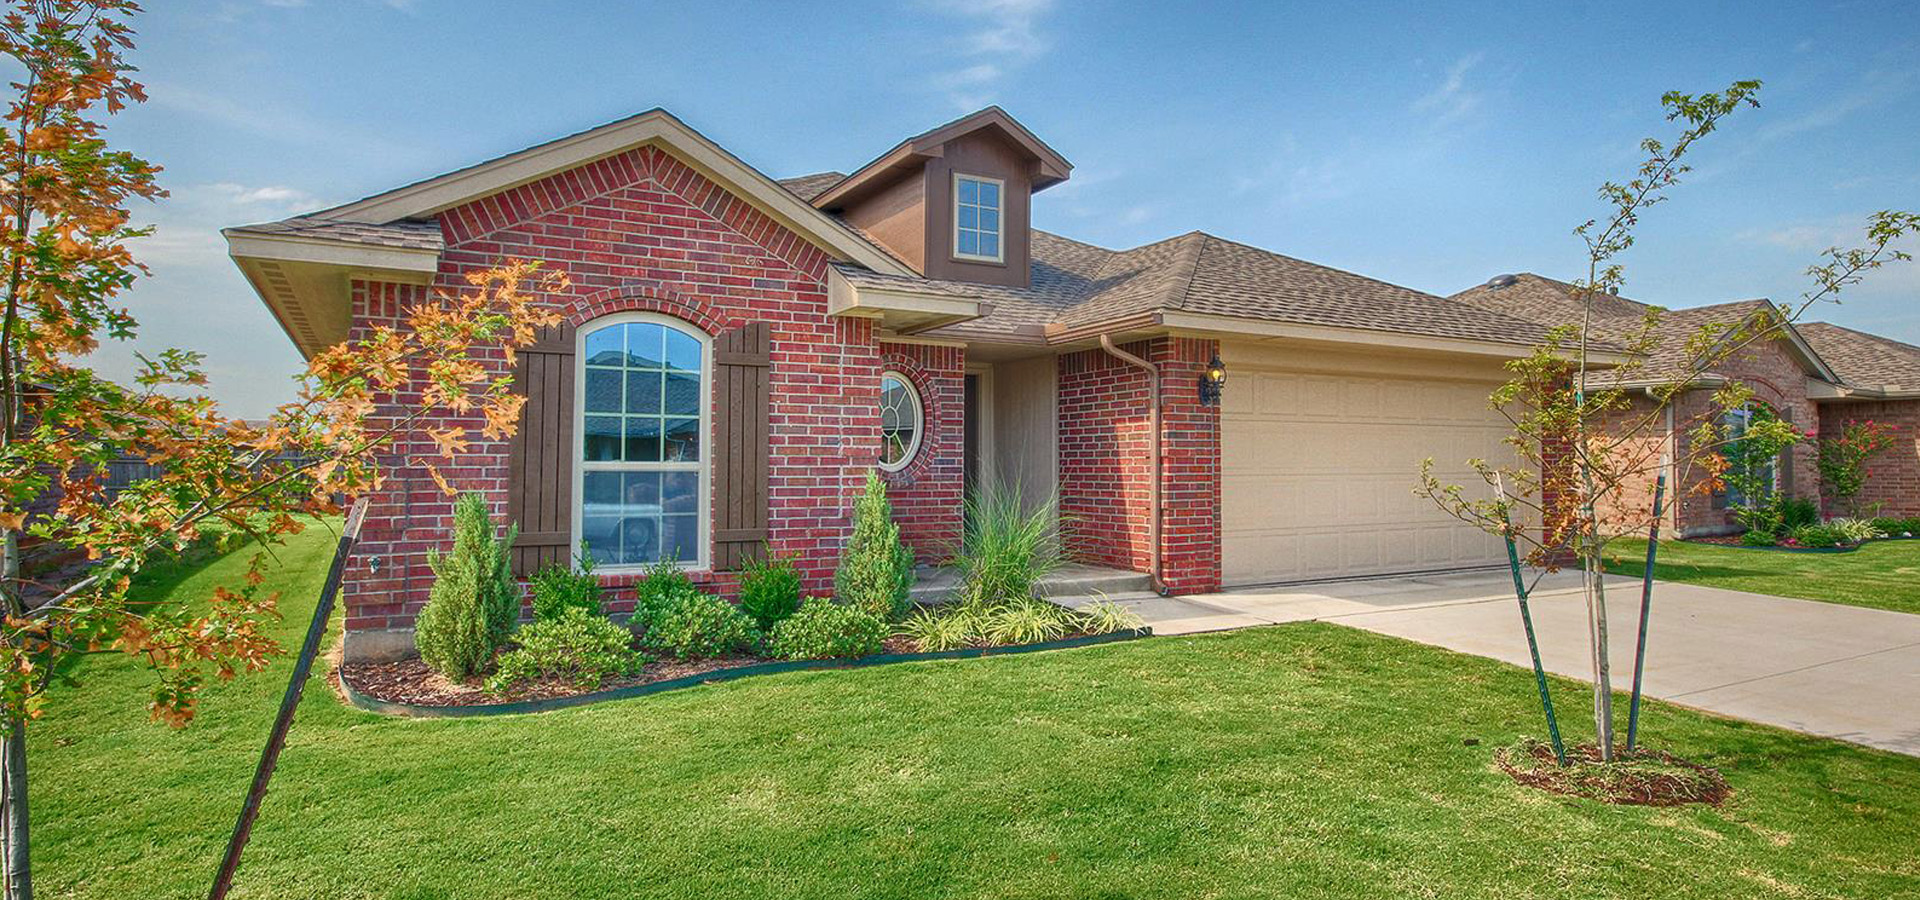 Find a Quality Oklahoma Homebuilder